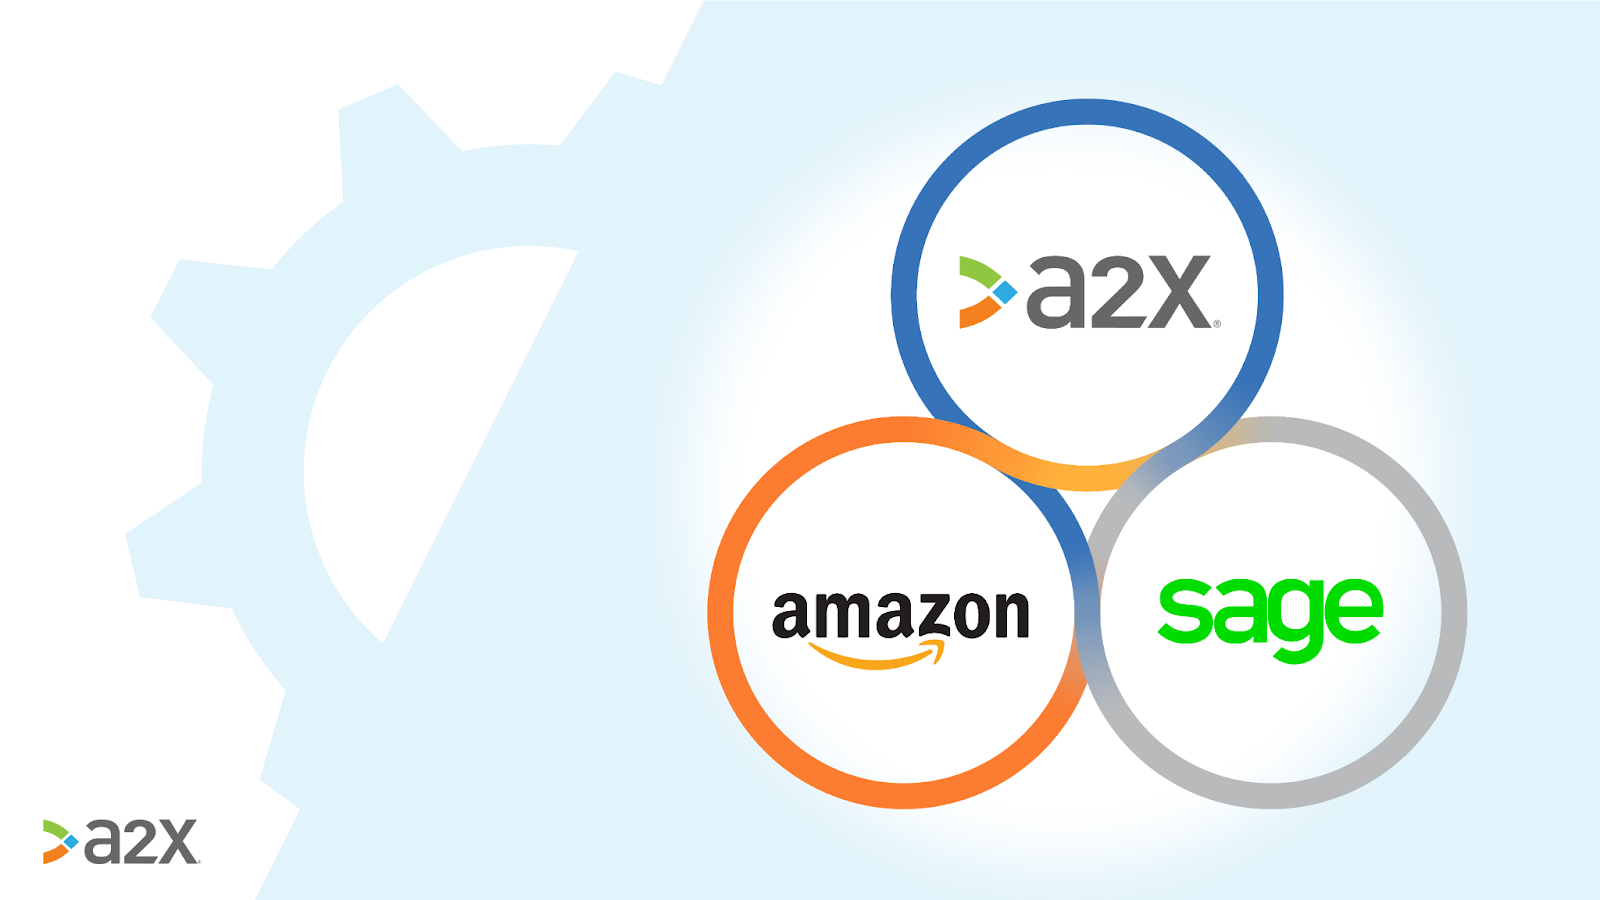 Sage Amazon and A2X